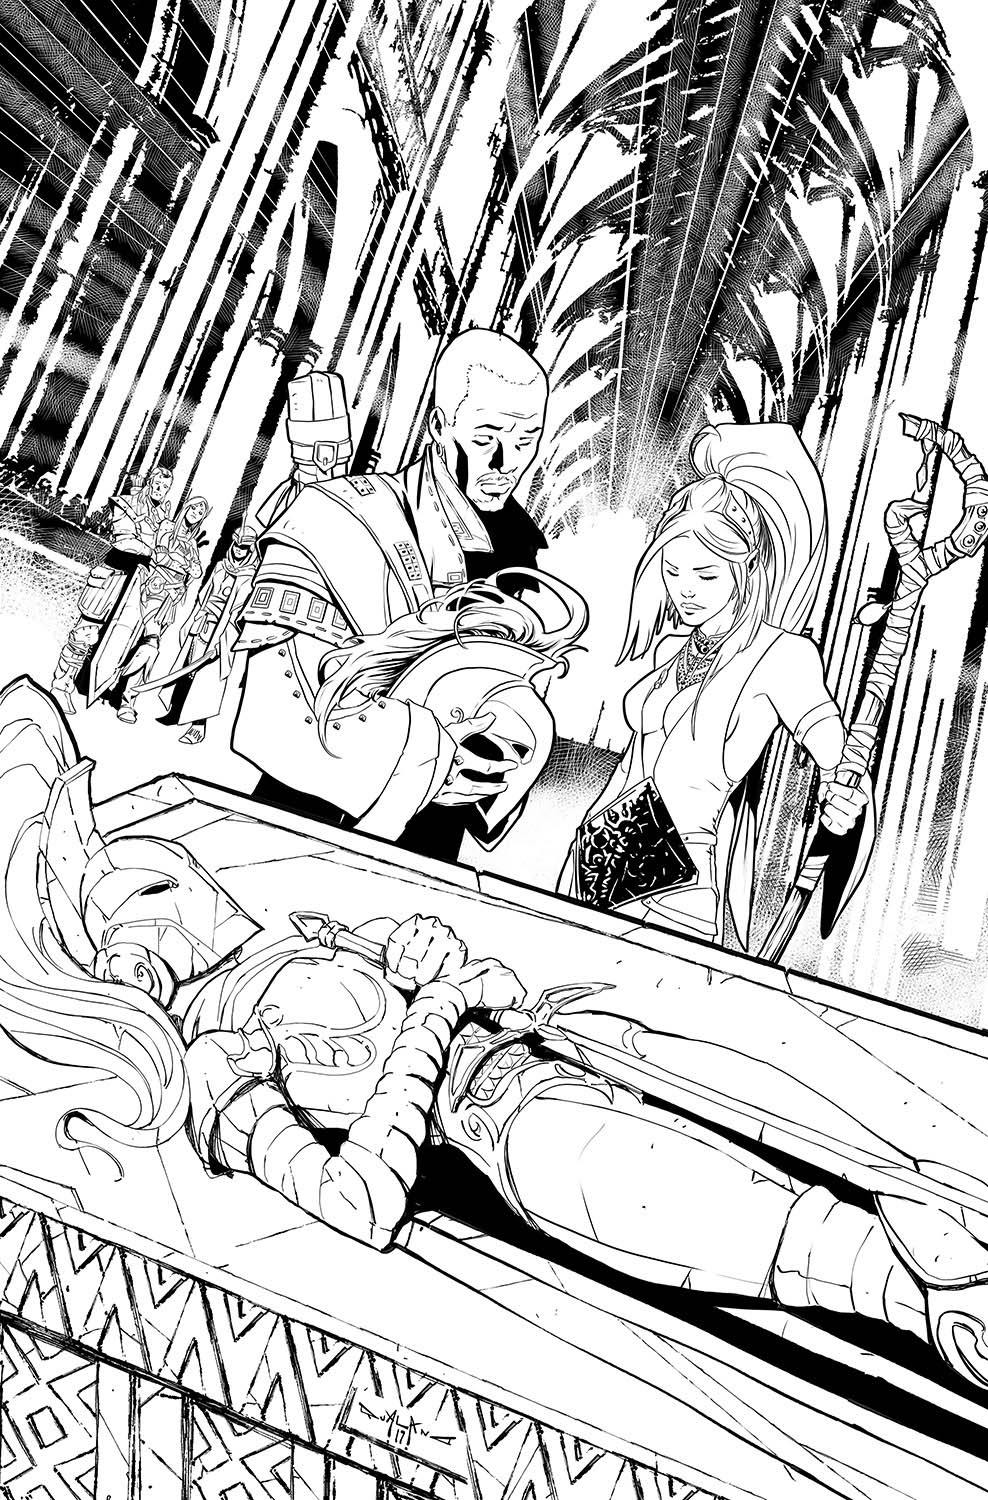 pasquale-qualano-portfolio-covers-Pathfinder-Runescars-#5-Inks---